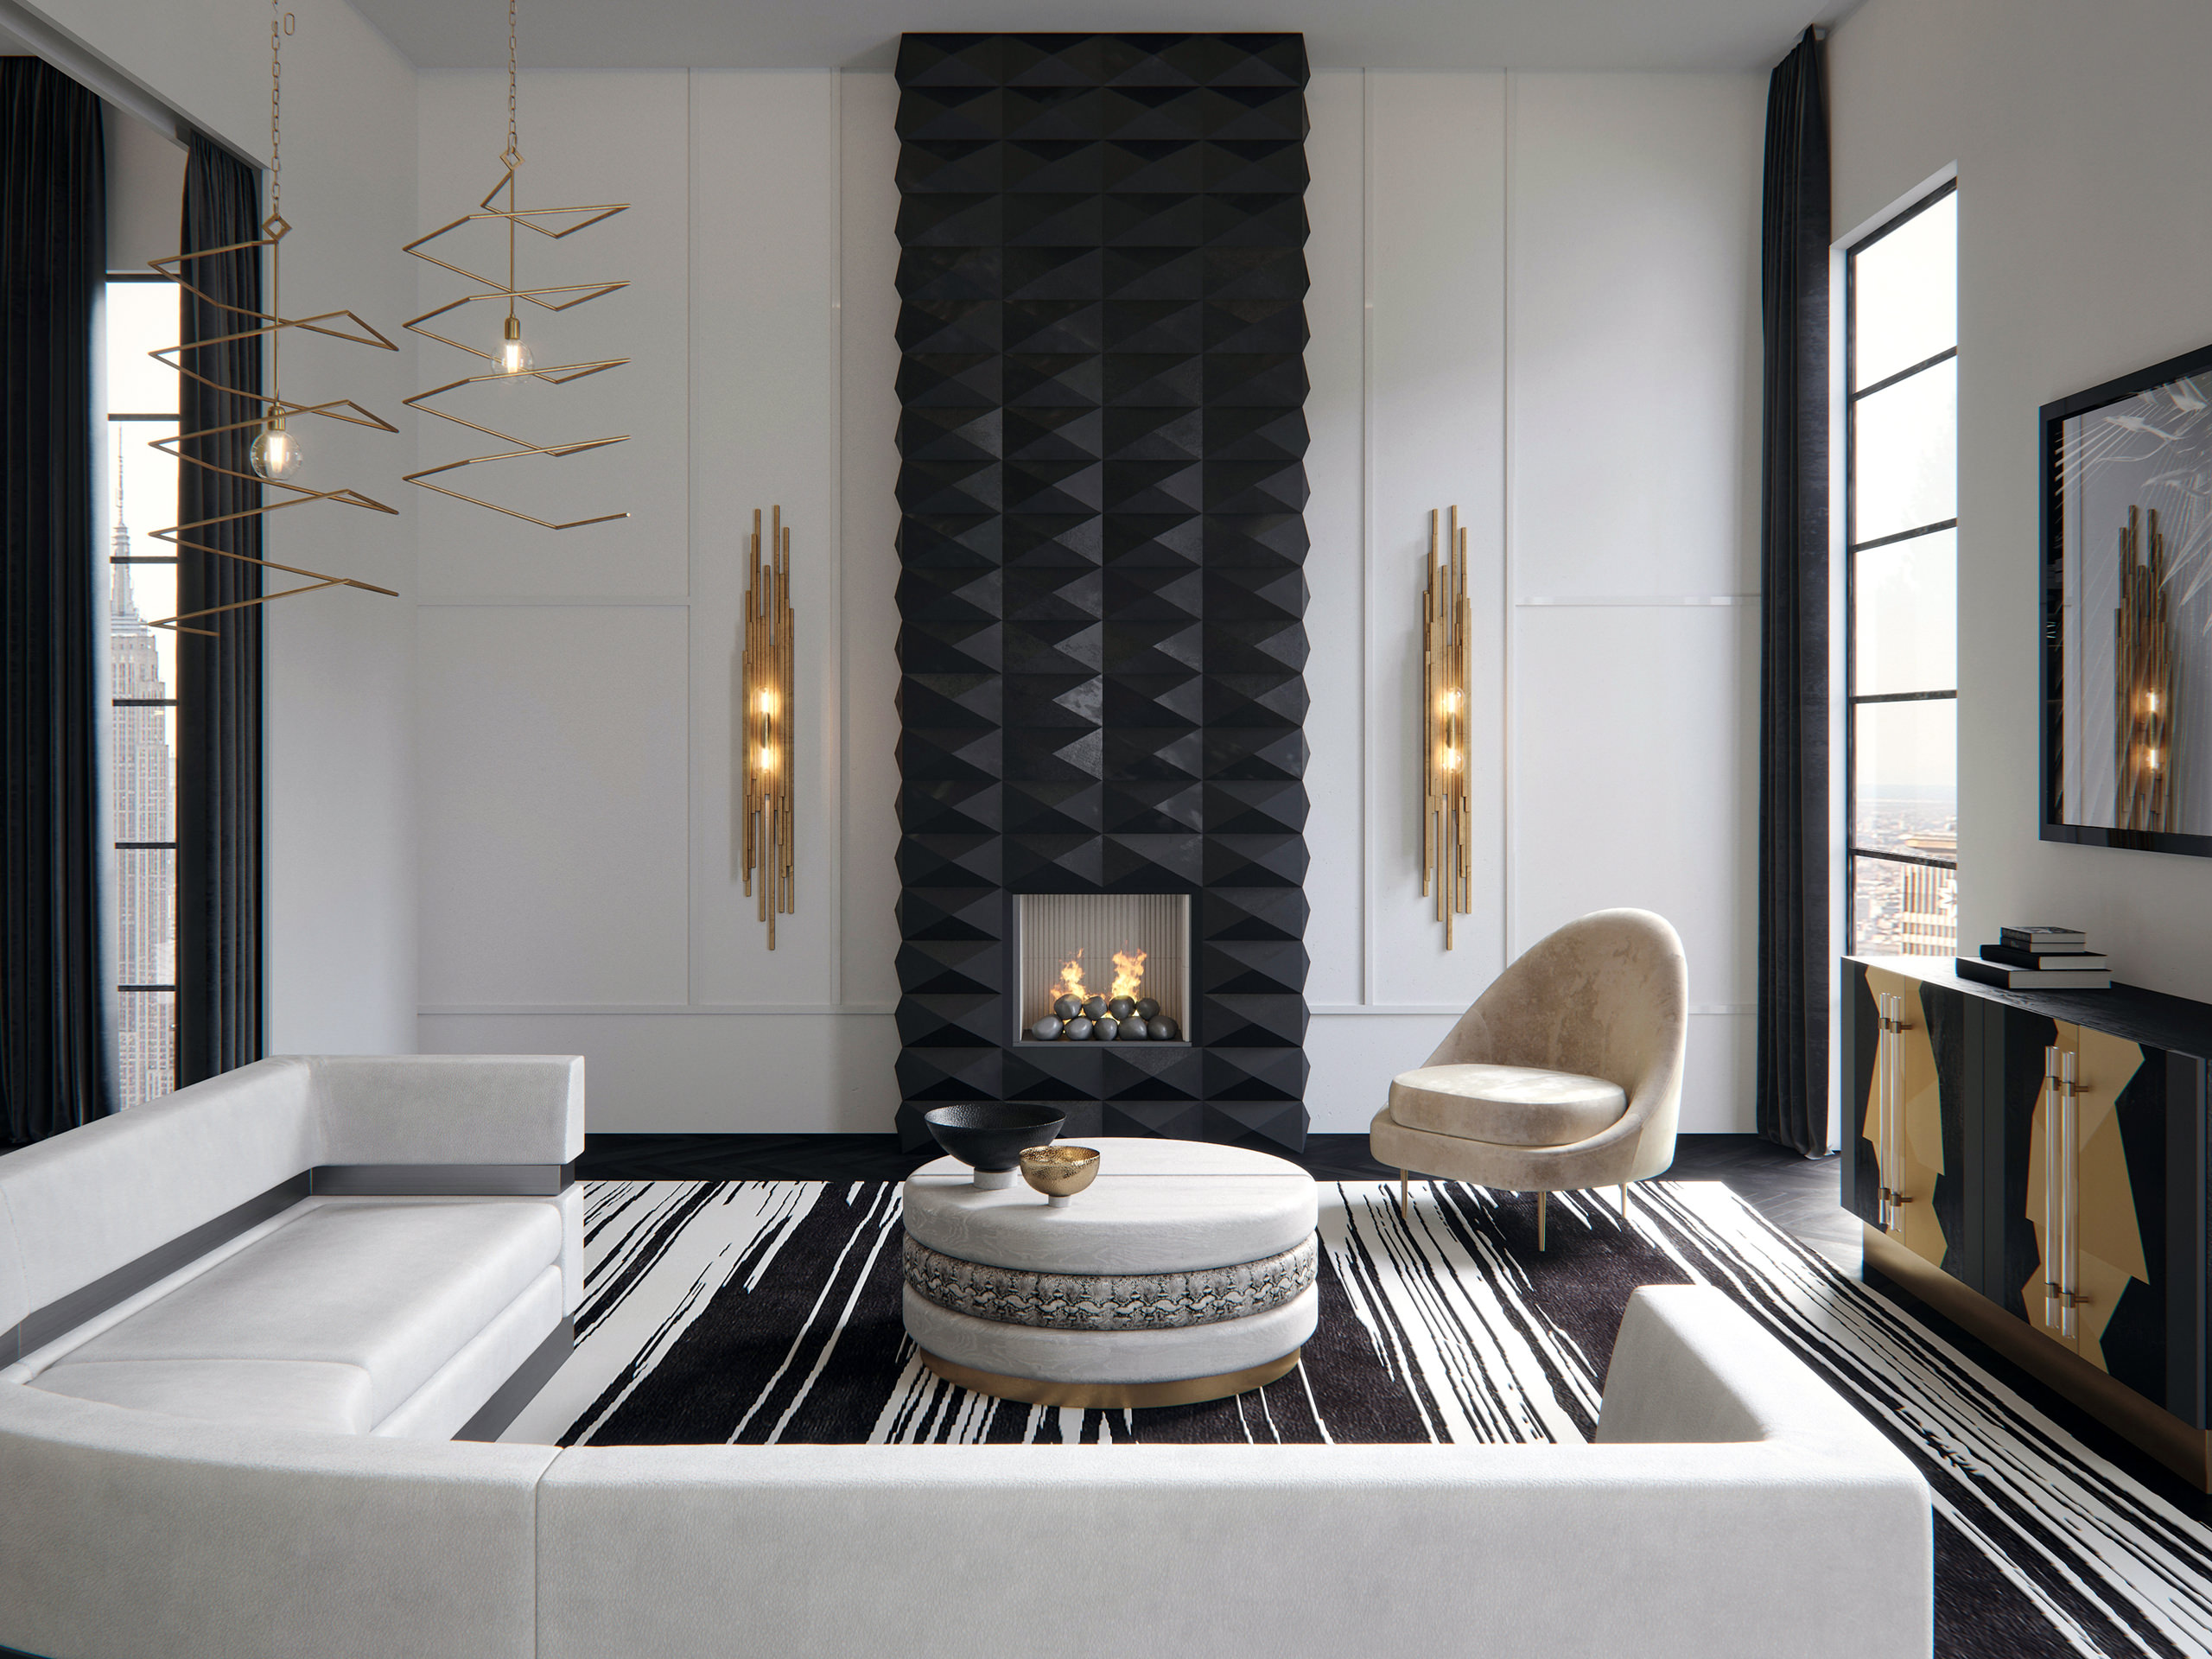 3D visualization of a modern show room apartment in New York carried out in black and white color palette with golden accents, with main emphasis on the designer pieces of furniture: sofas, armchairs, cabinets, lighting fixtures